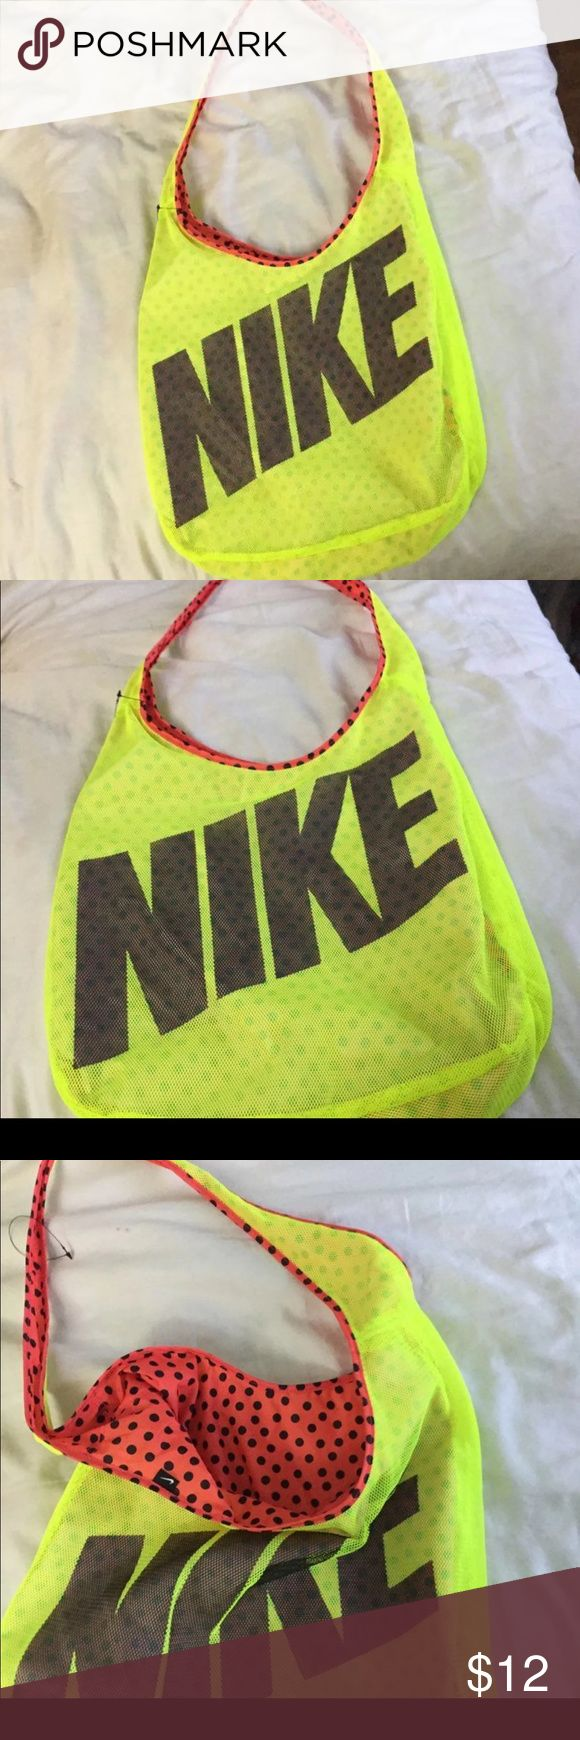 Nike shoulder Bag. New Nike shoulder Bag. Super Cute and lightweight . NEW Nike Bags